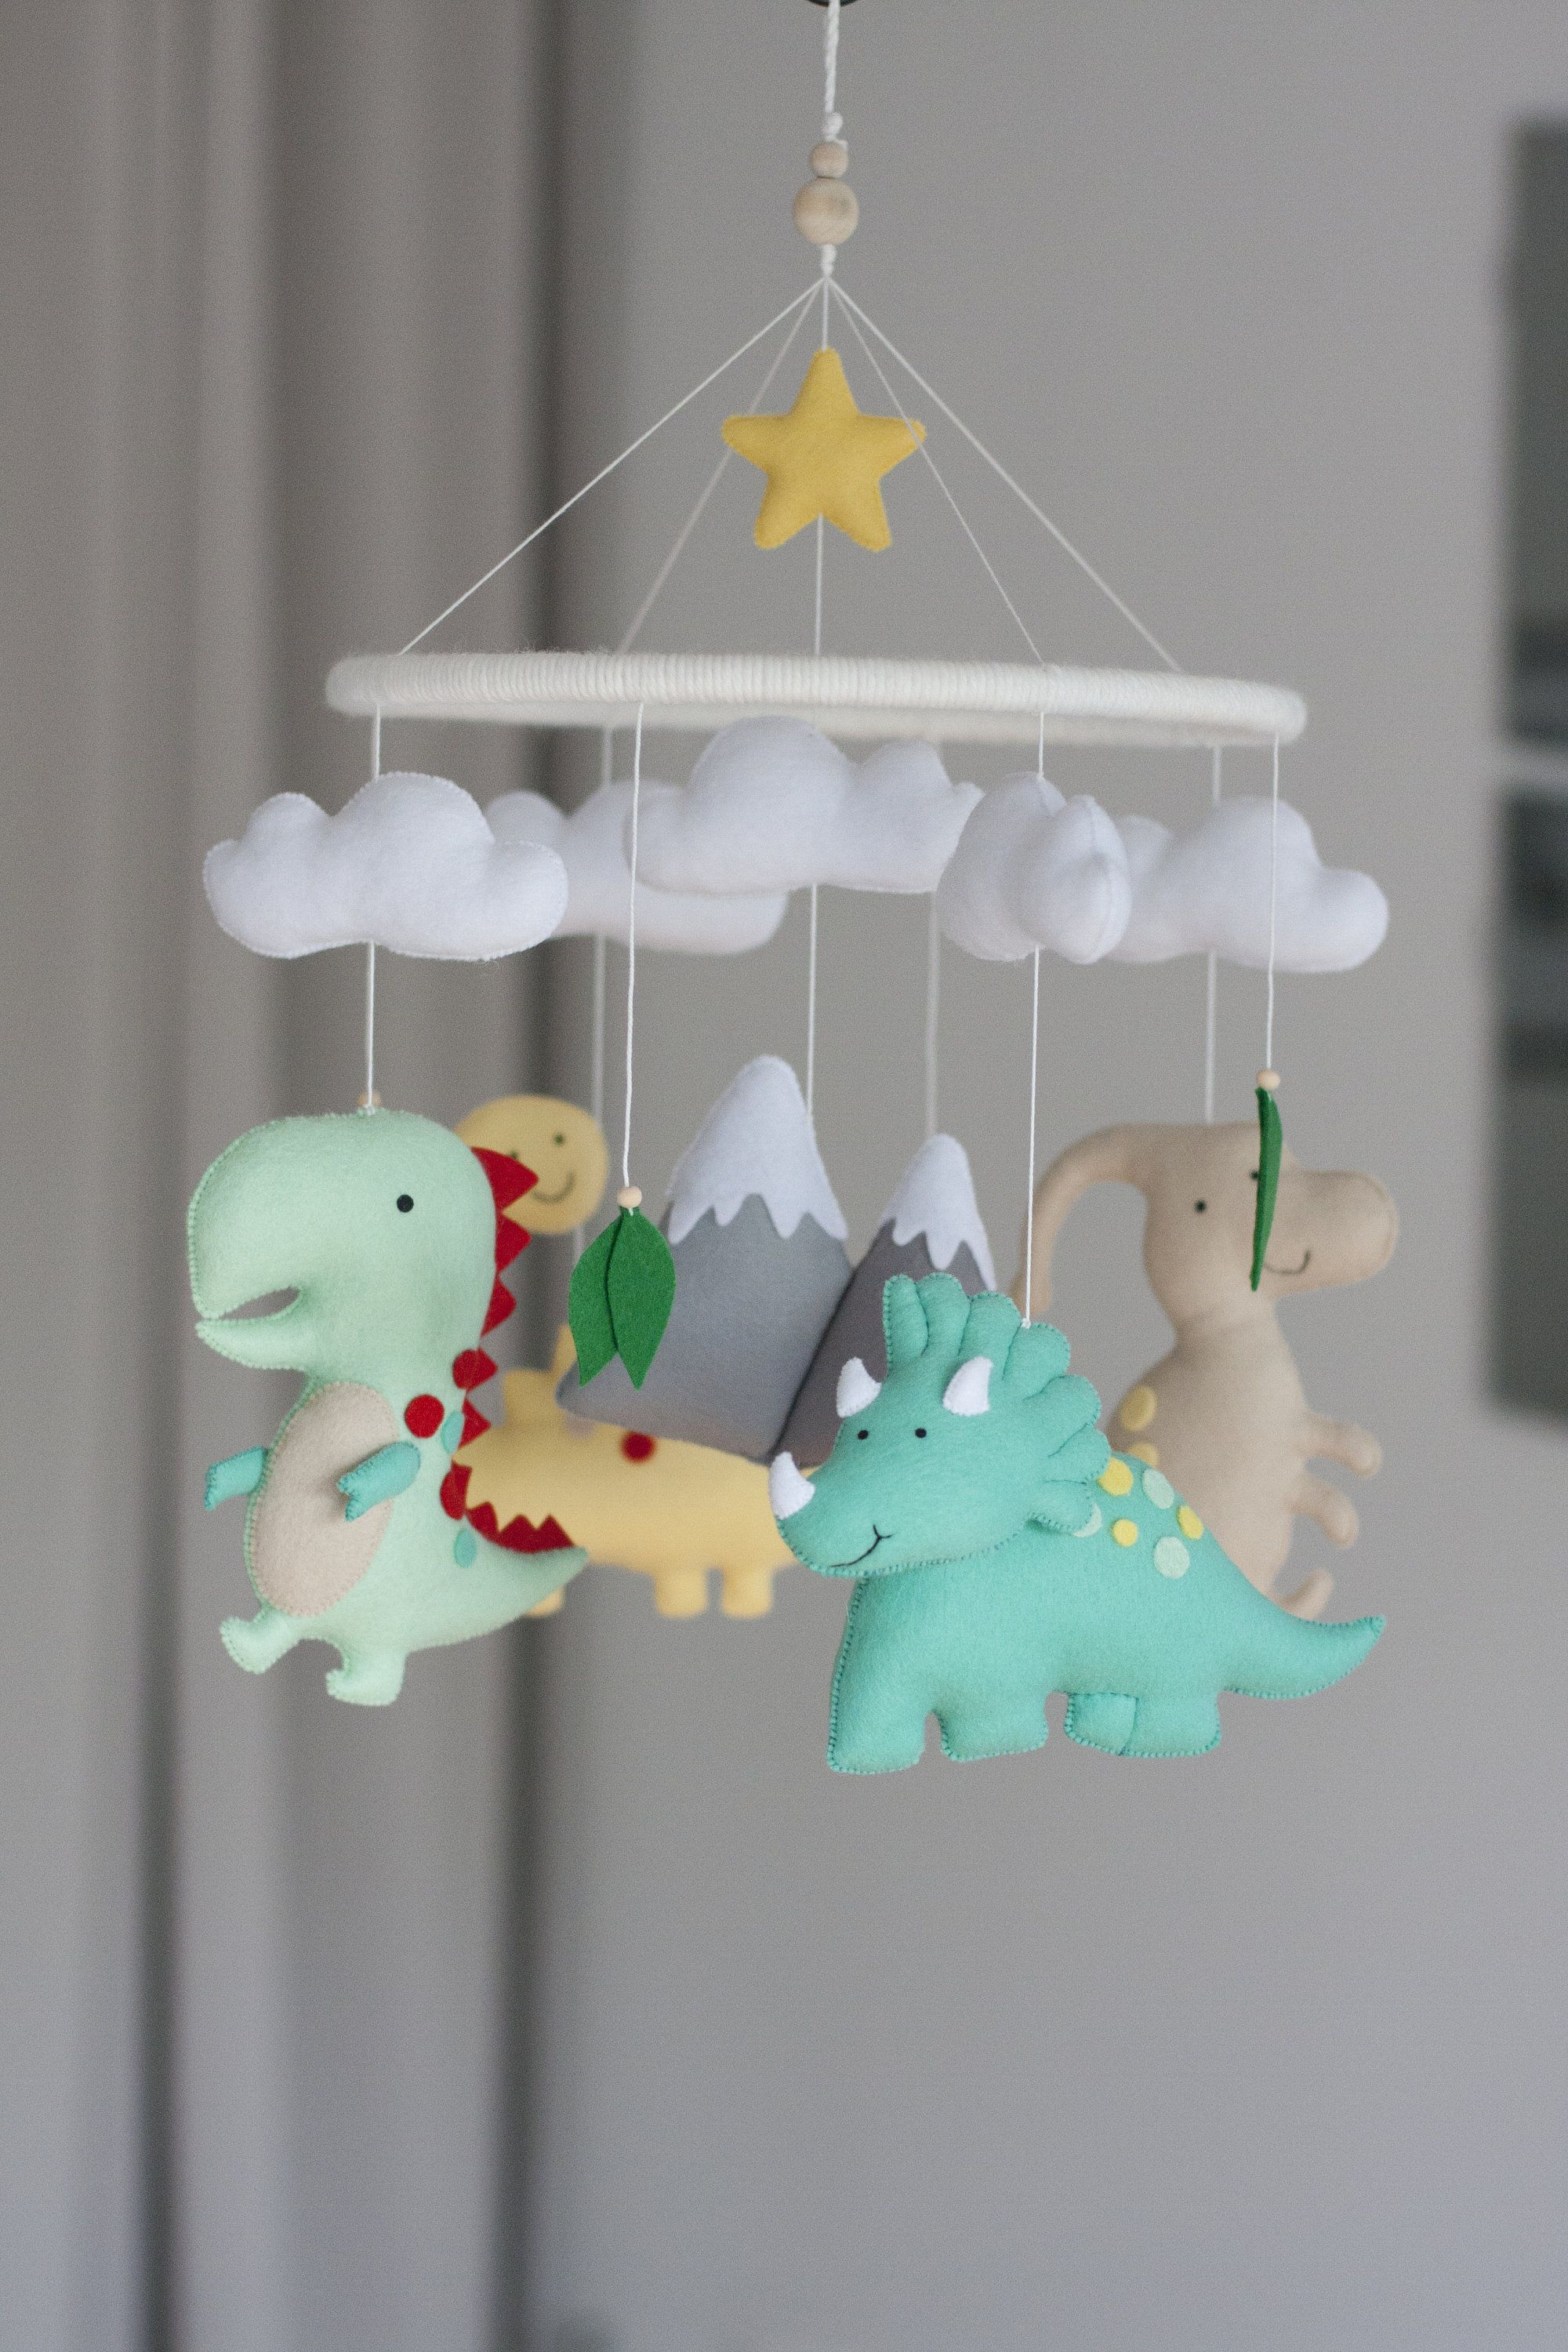 Dinosaur mobile/Adorale Little Dinosaurs for nursery/Baby mobile with dinosaurs for baby nursery/ nursery decor/